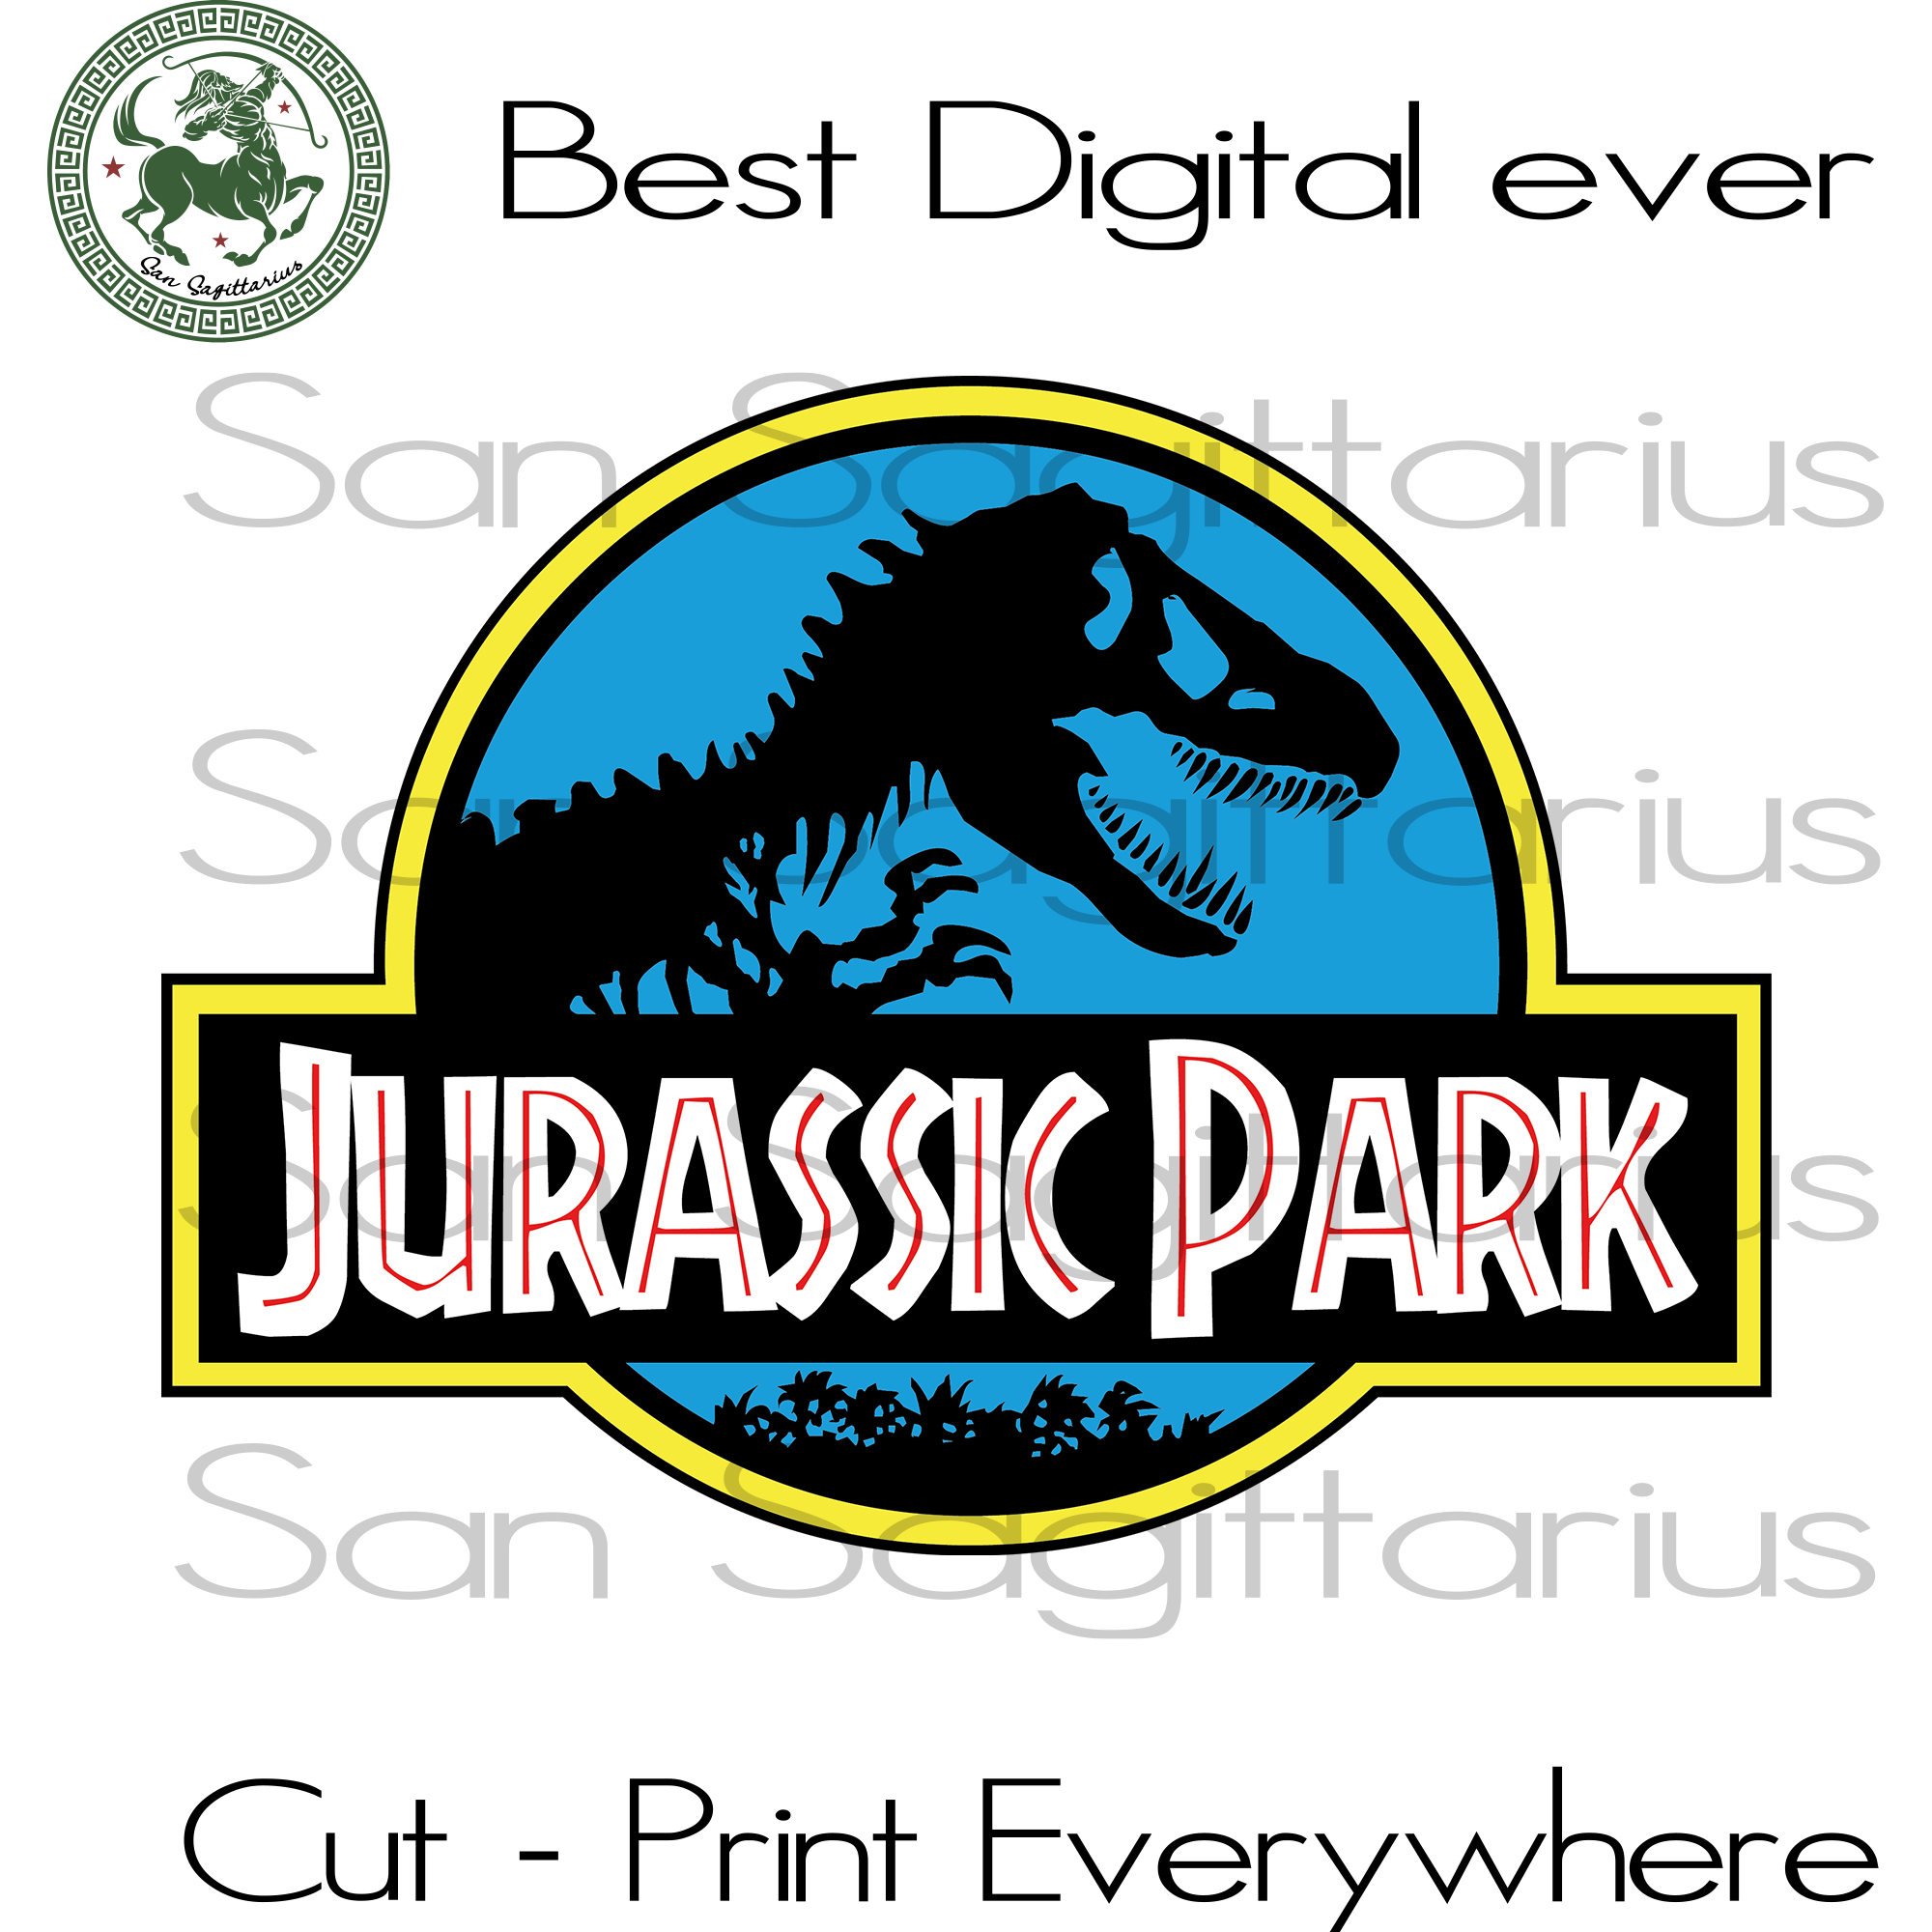 Jurassic Park Movie Clipart Best Gift For Kids SVG Files For Cricut Silhouette Instant Download | San Sagittarius